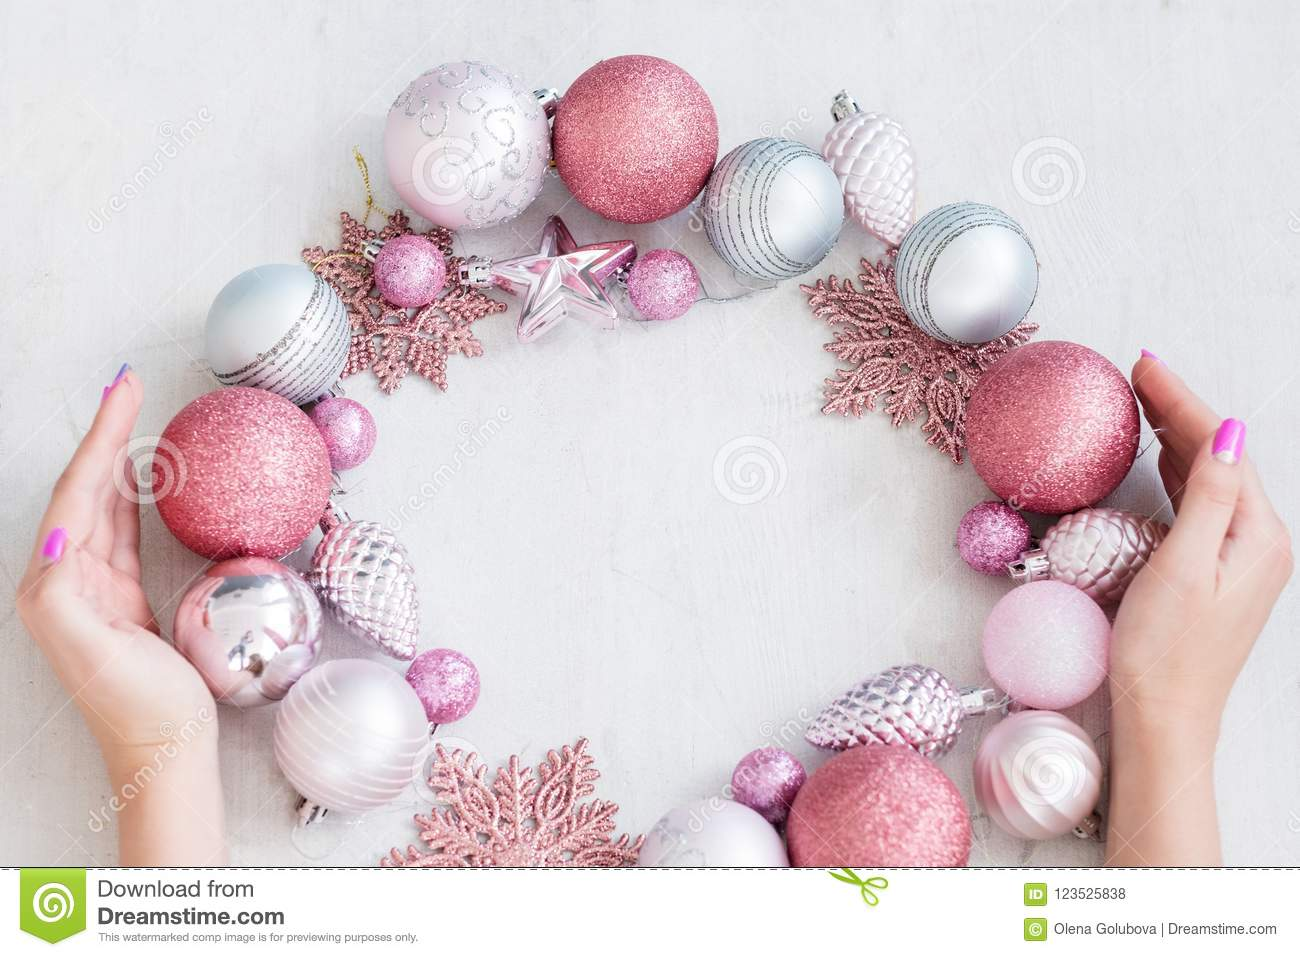 Seasonal decor christmas background hands wreath